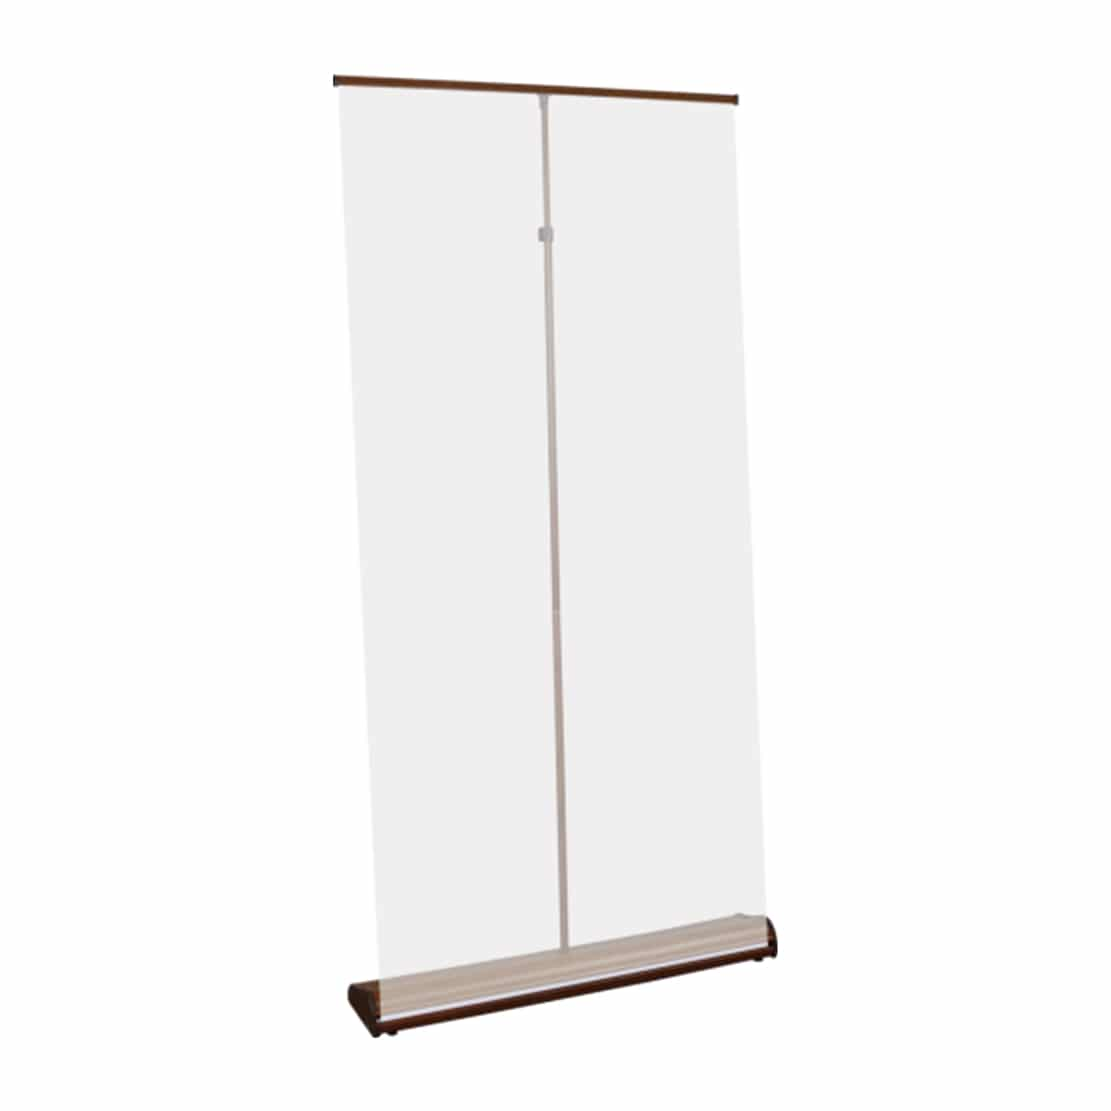 organic high quality wood grain banner stand display showing pole and top bar